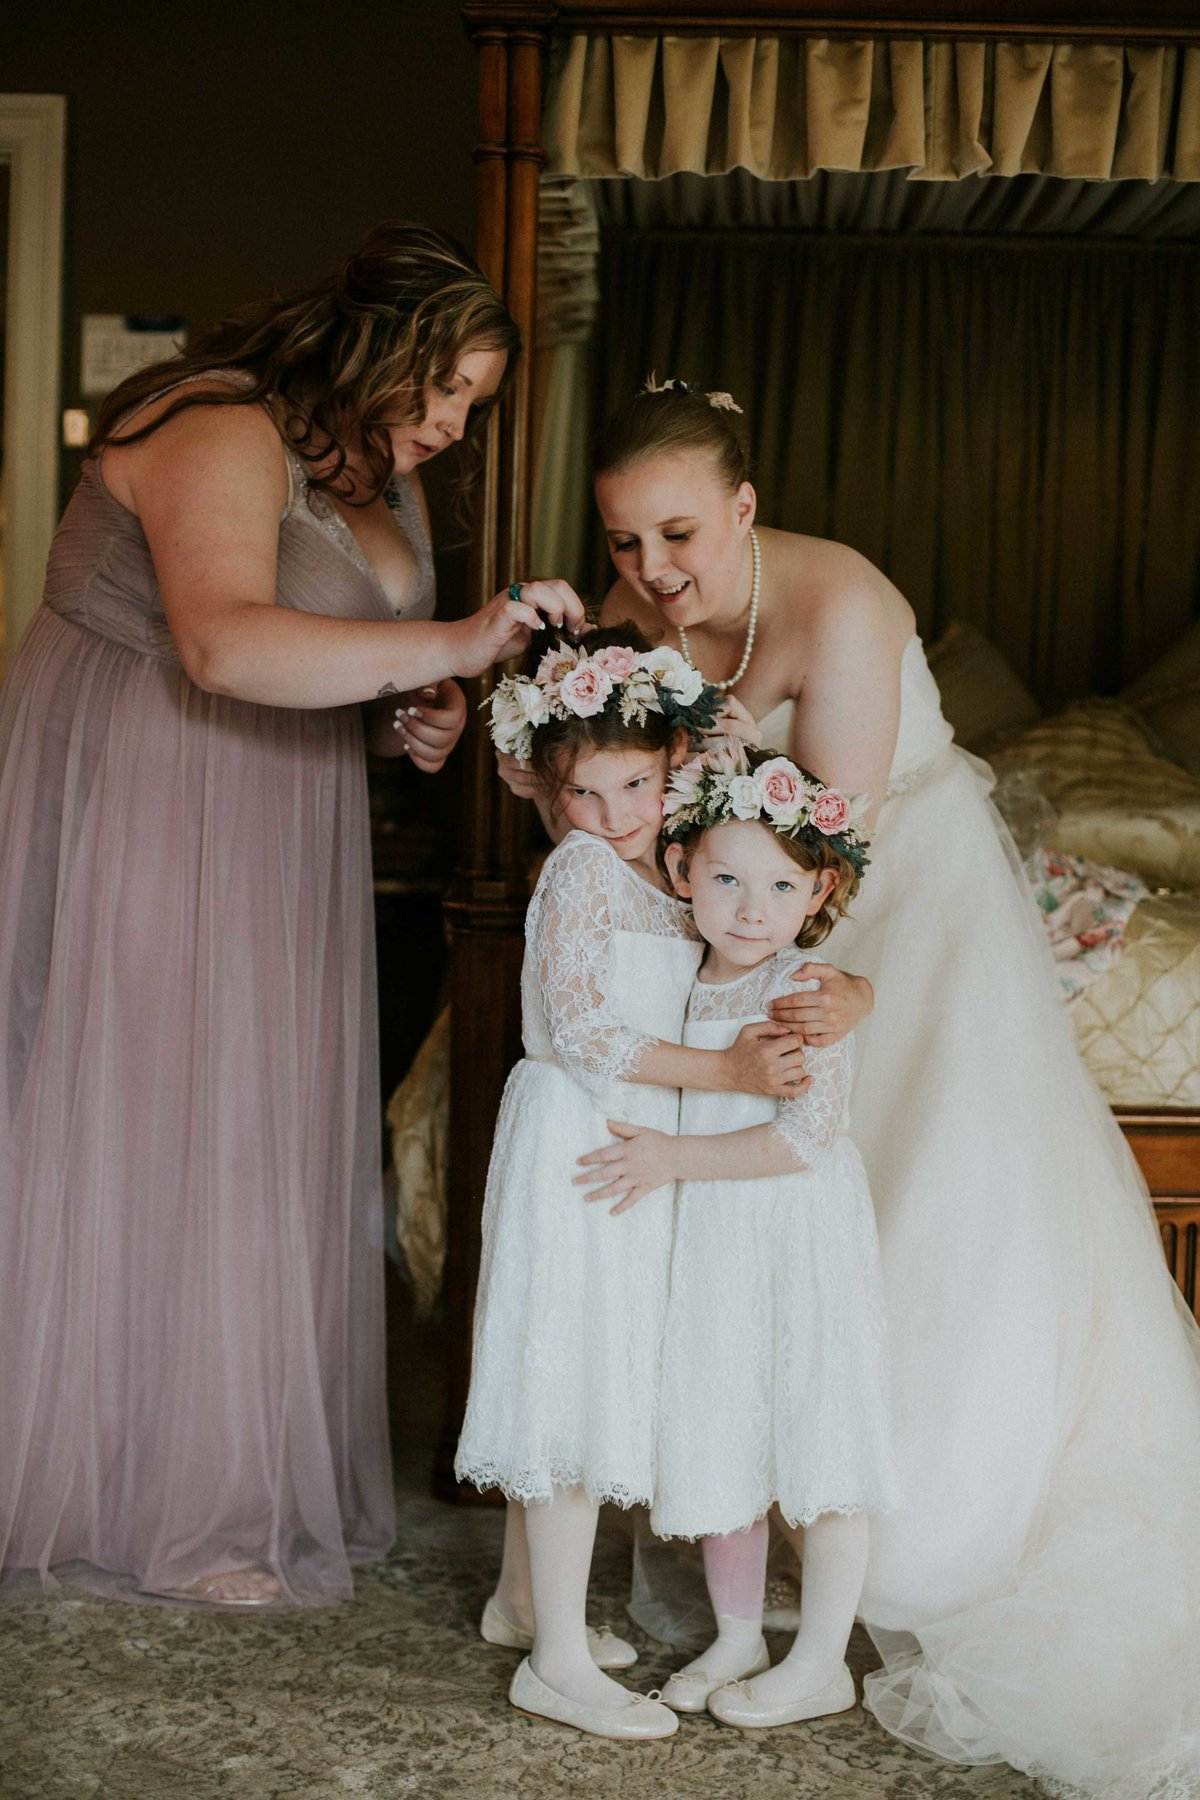 Flower girls hug while bride secures flower crown at Laurel Hall Wedding